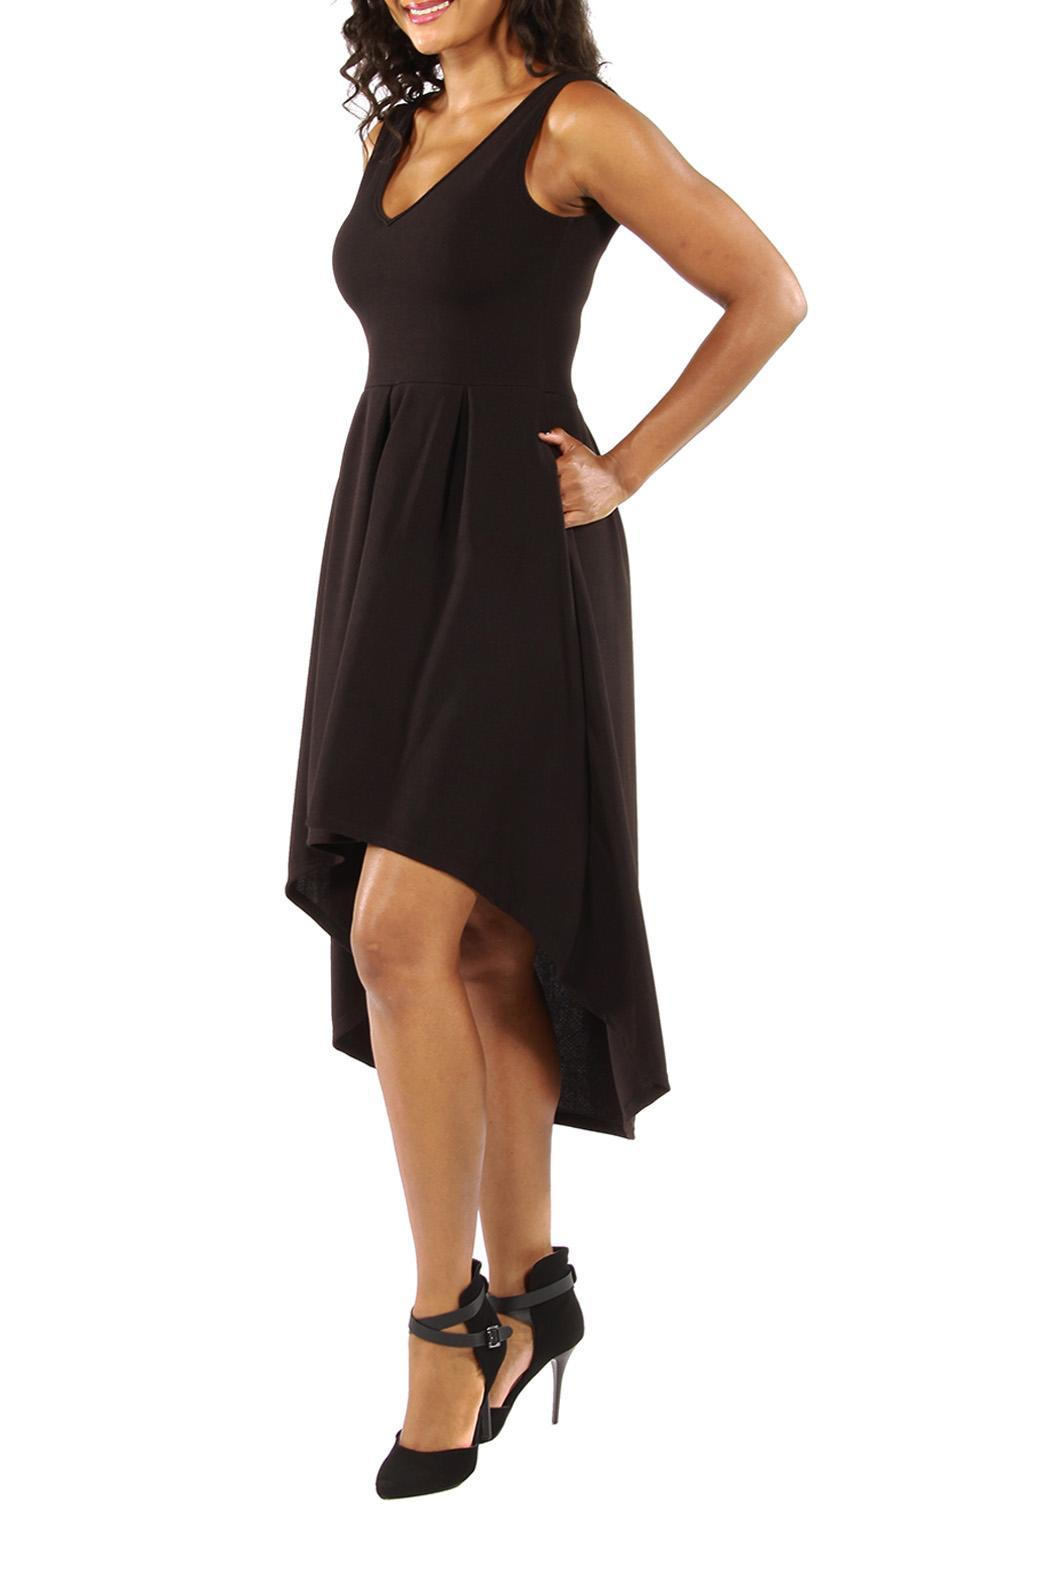 24 7 Comfort Apparel High Low Dress From California By The